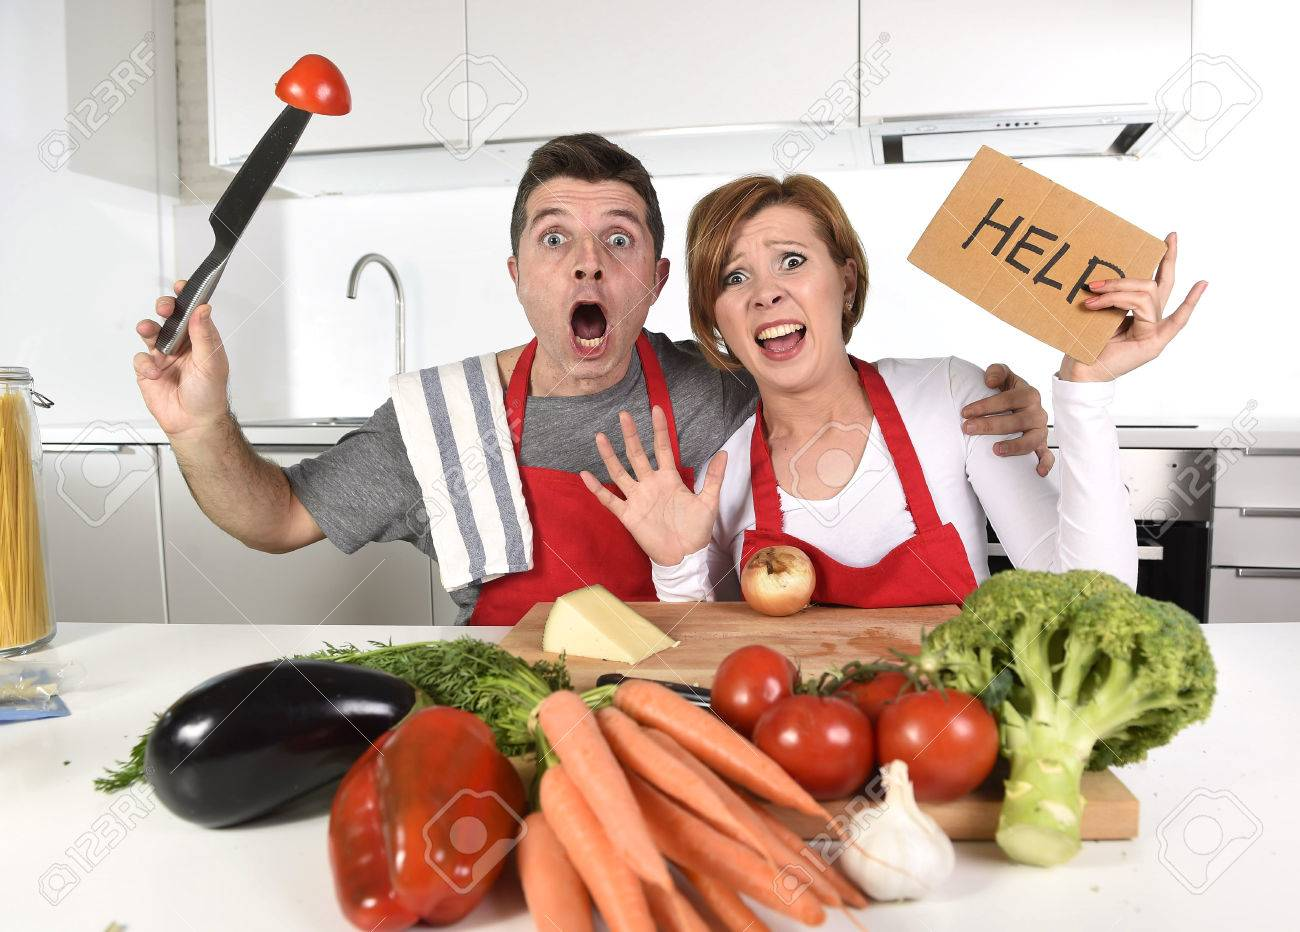 amateur young couple young attractive American couple in stress at home kitchen looking lost and  frustrated wearing apron asking